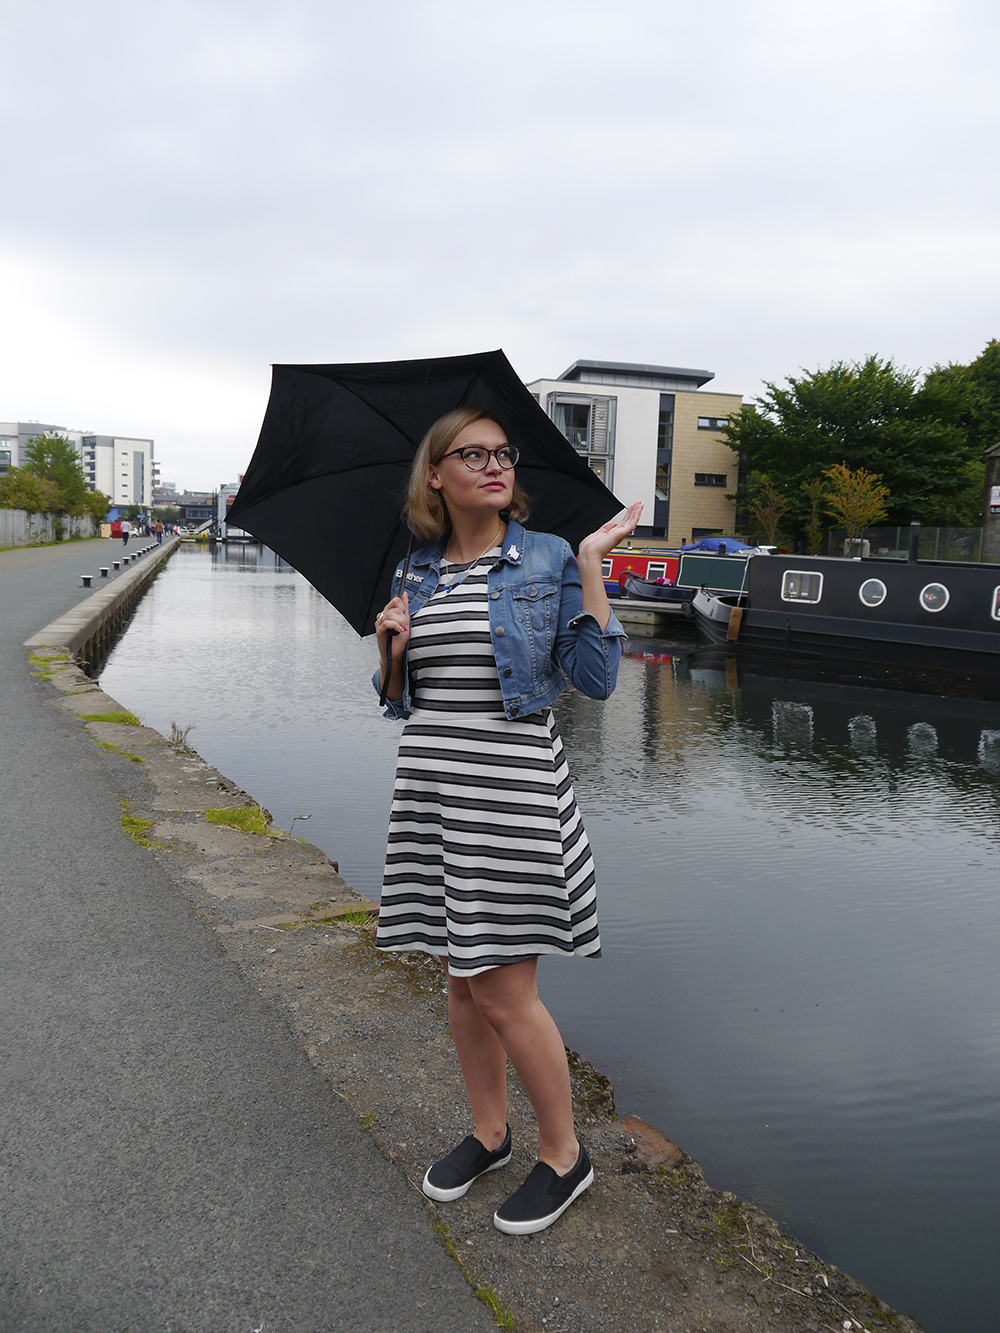 Edinburgh Fringe Festival, Edinburgh canal walk, Edinburgh blogger, beginner guide to self tan, easy self tan review, Bellamianta luxury tanning, UK blogger, fashion blogger, Wardrobe Conversations, photoshoot in Edinburgh, Edinburgh fashion